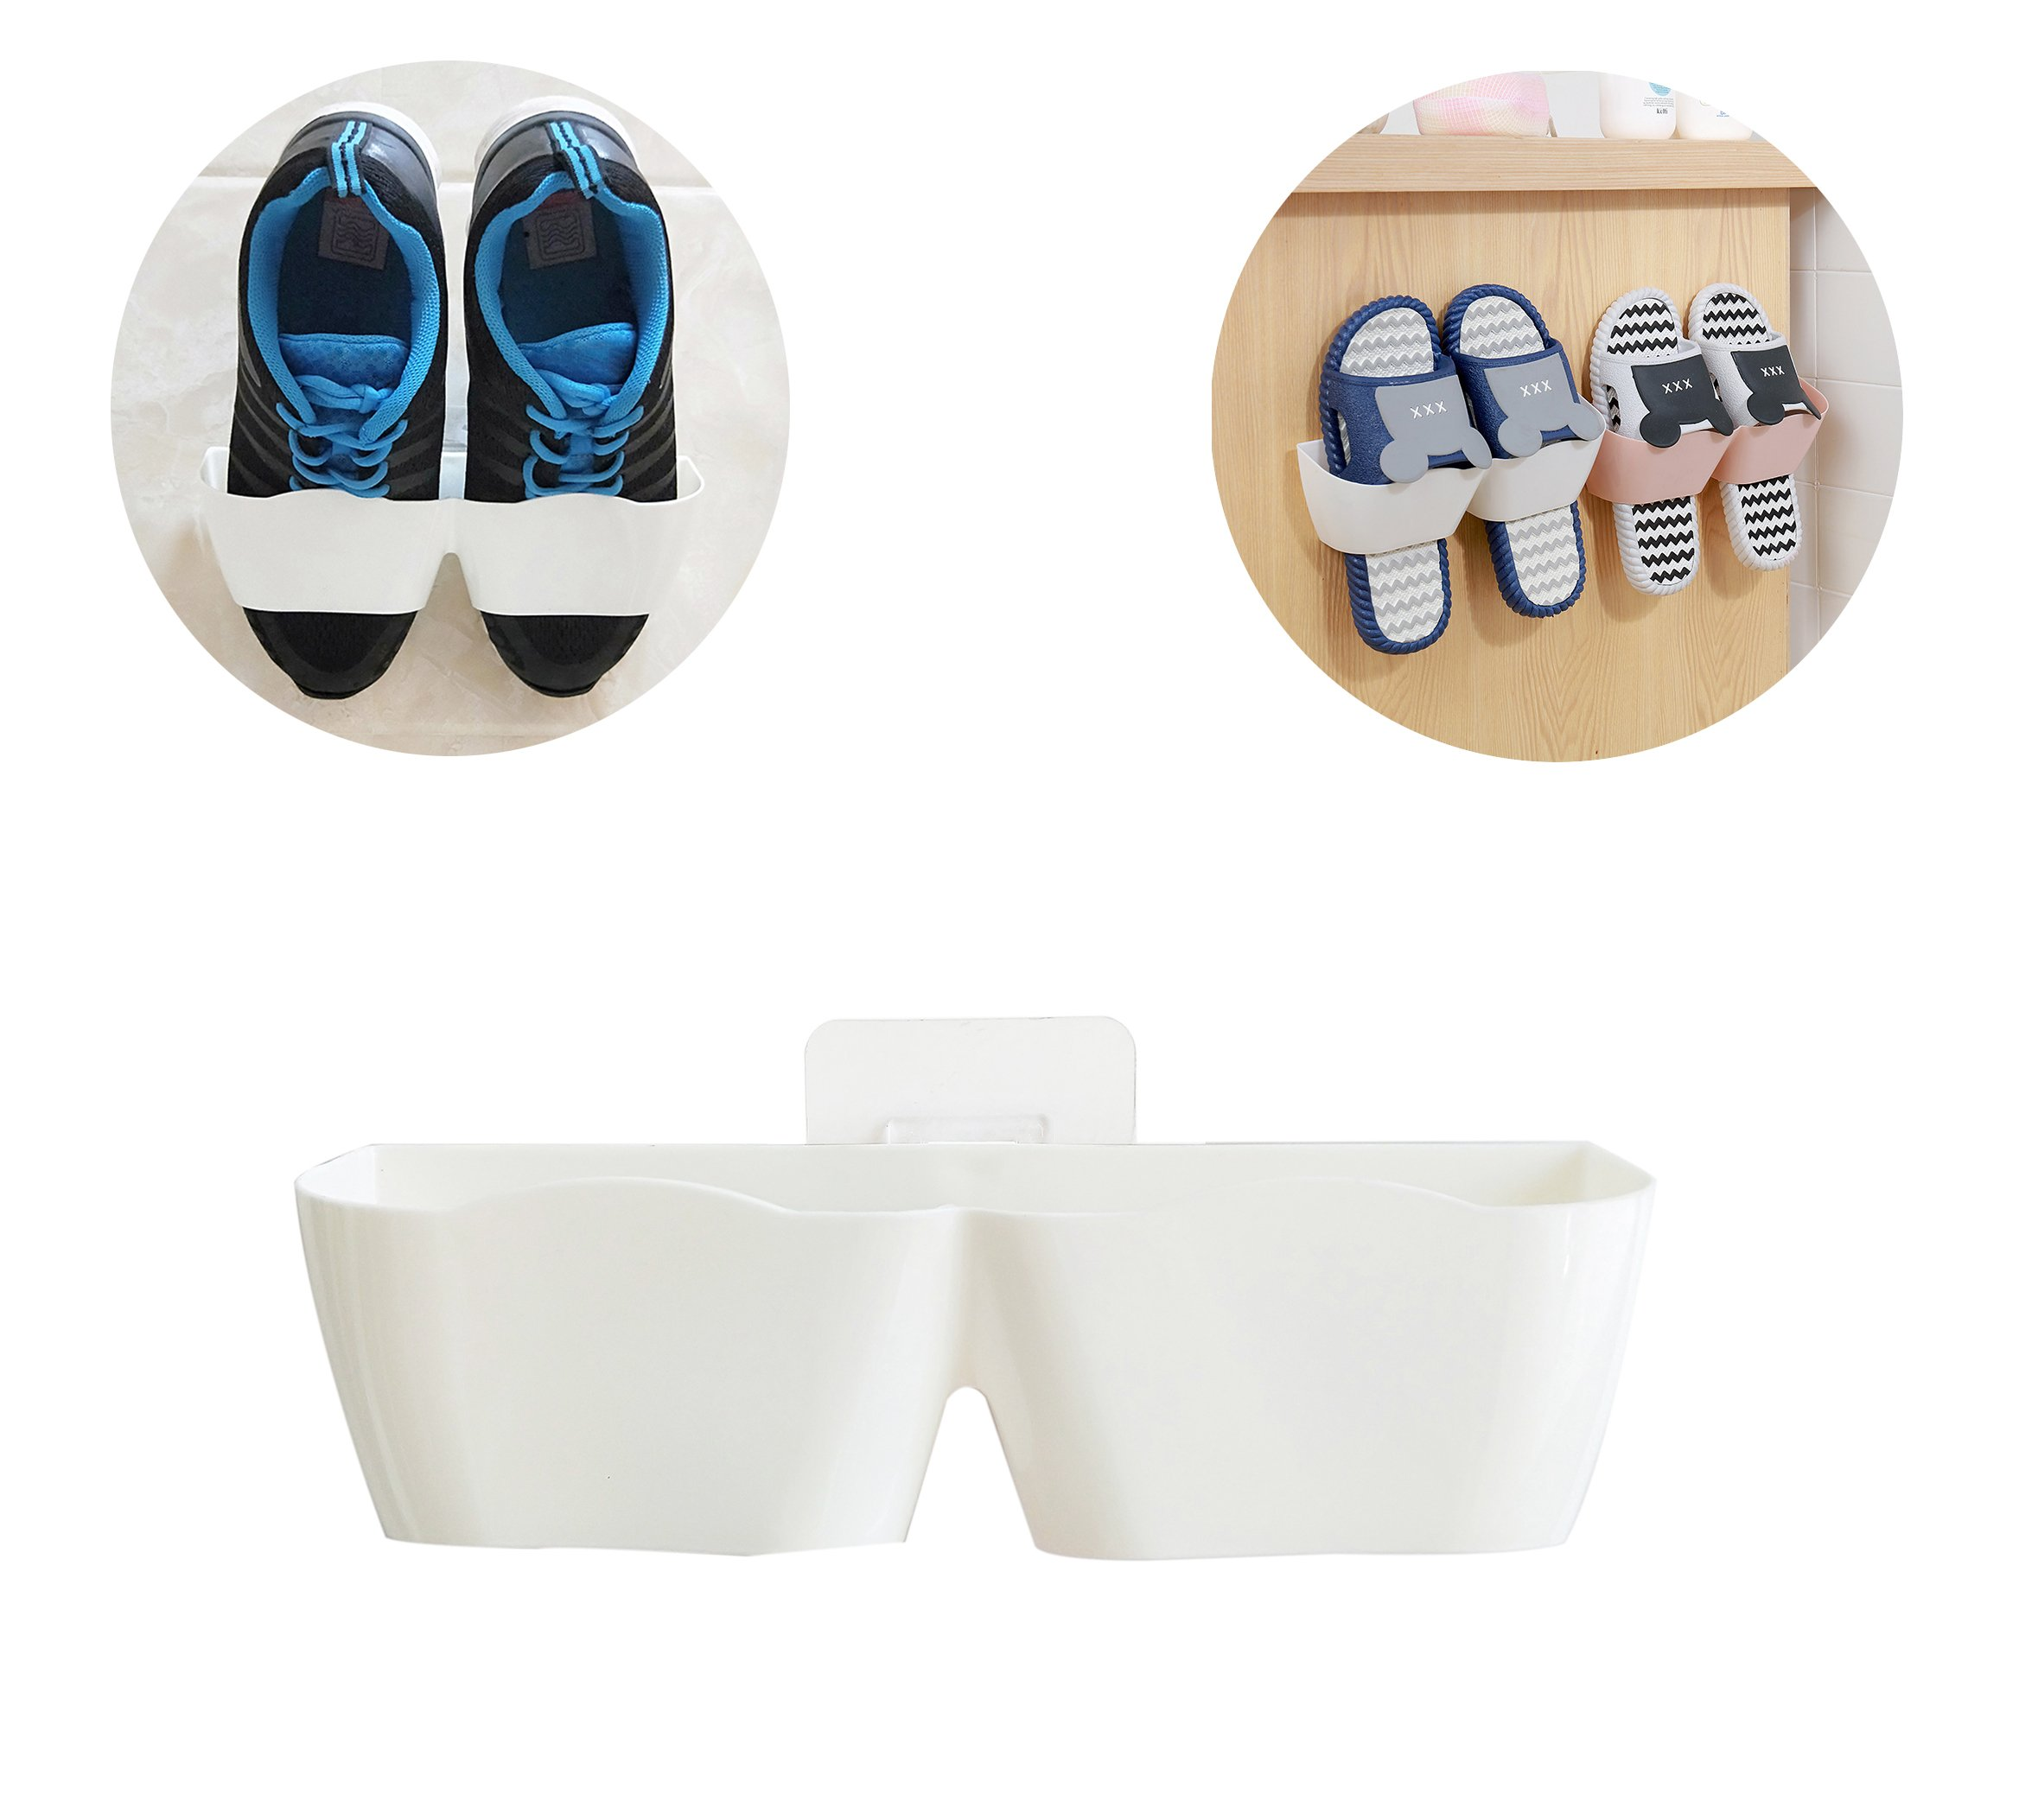 MEOLY Home Shoes Rack Strong Bearing Shoes Shelf Plastic Wall Mounted Shoes Rack with Non-trace stick for Entryway Door Hanging Shoes Organizer 4pcs Pack(White)